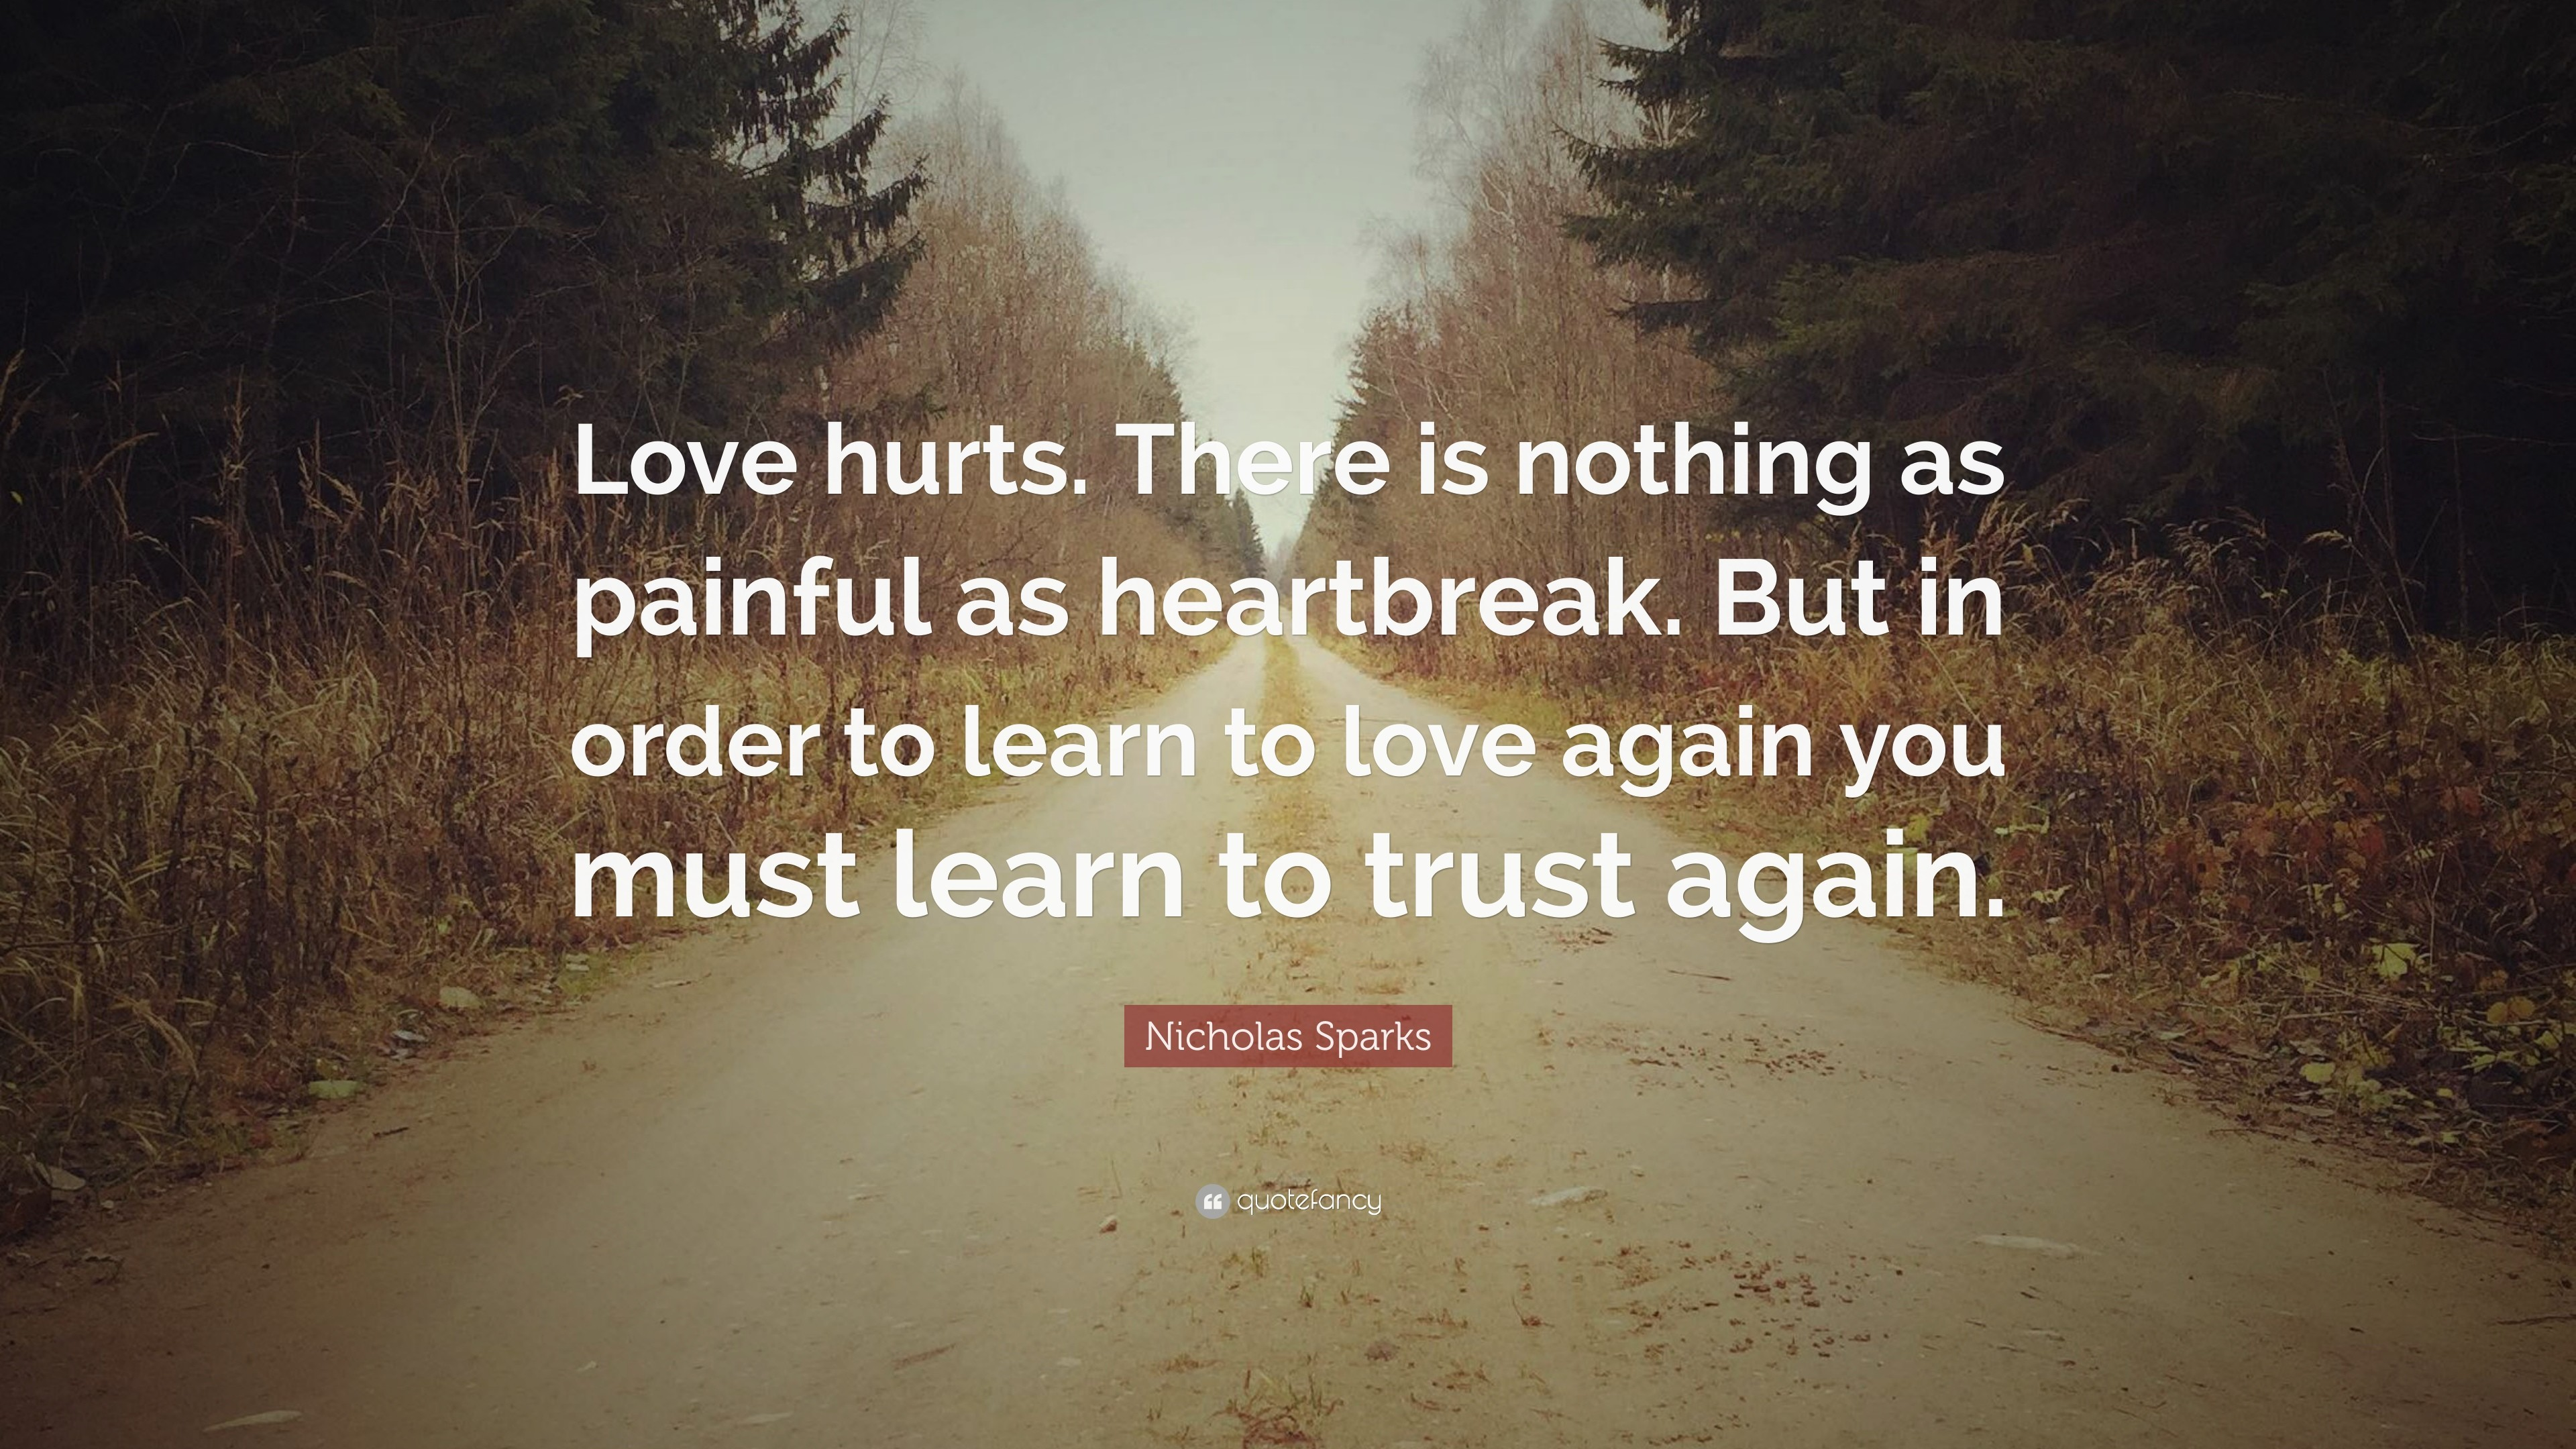 Love Pain Quotes Wallpaper : Love Hurts Wallpapers with Quotes (68+ images)